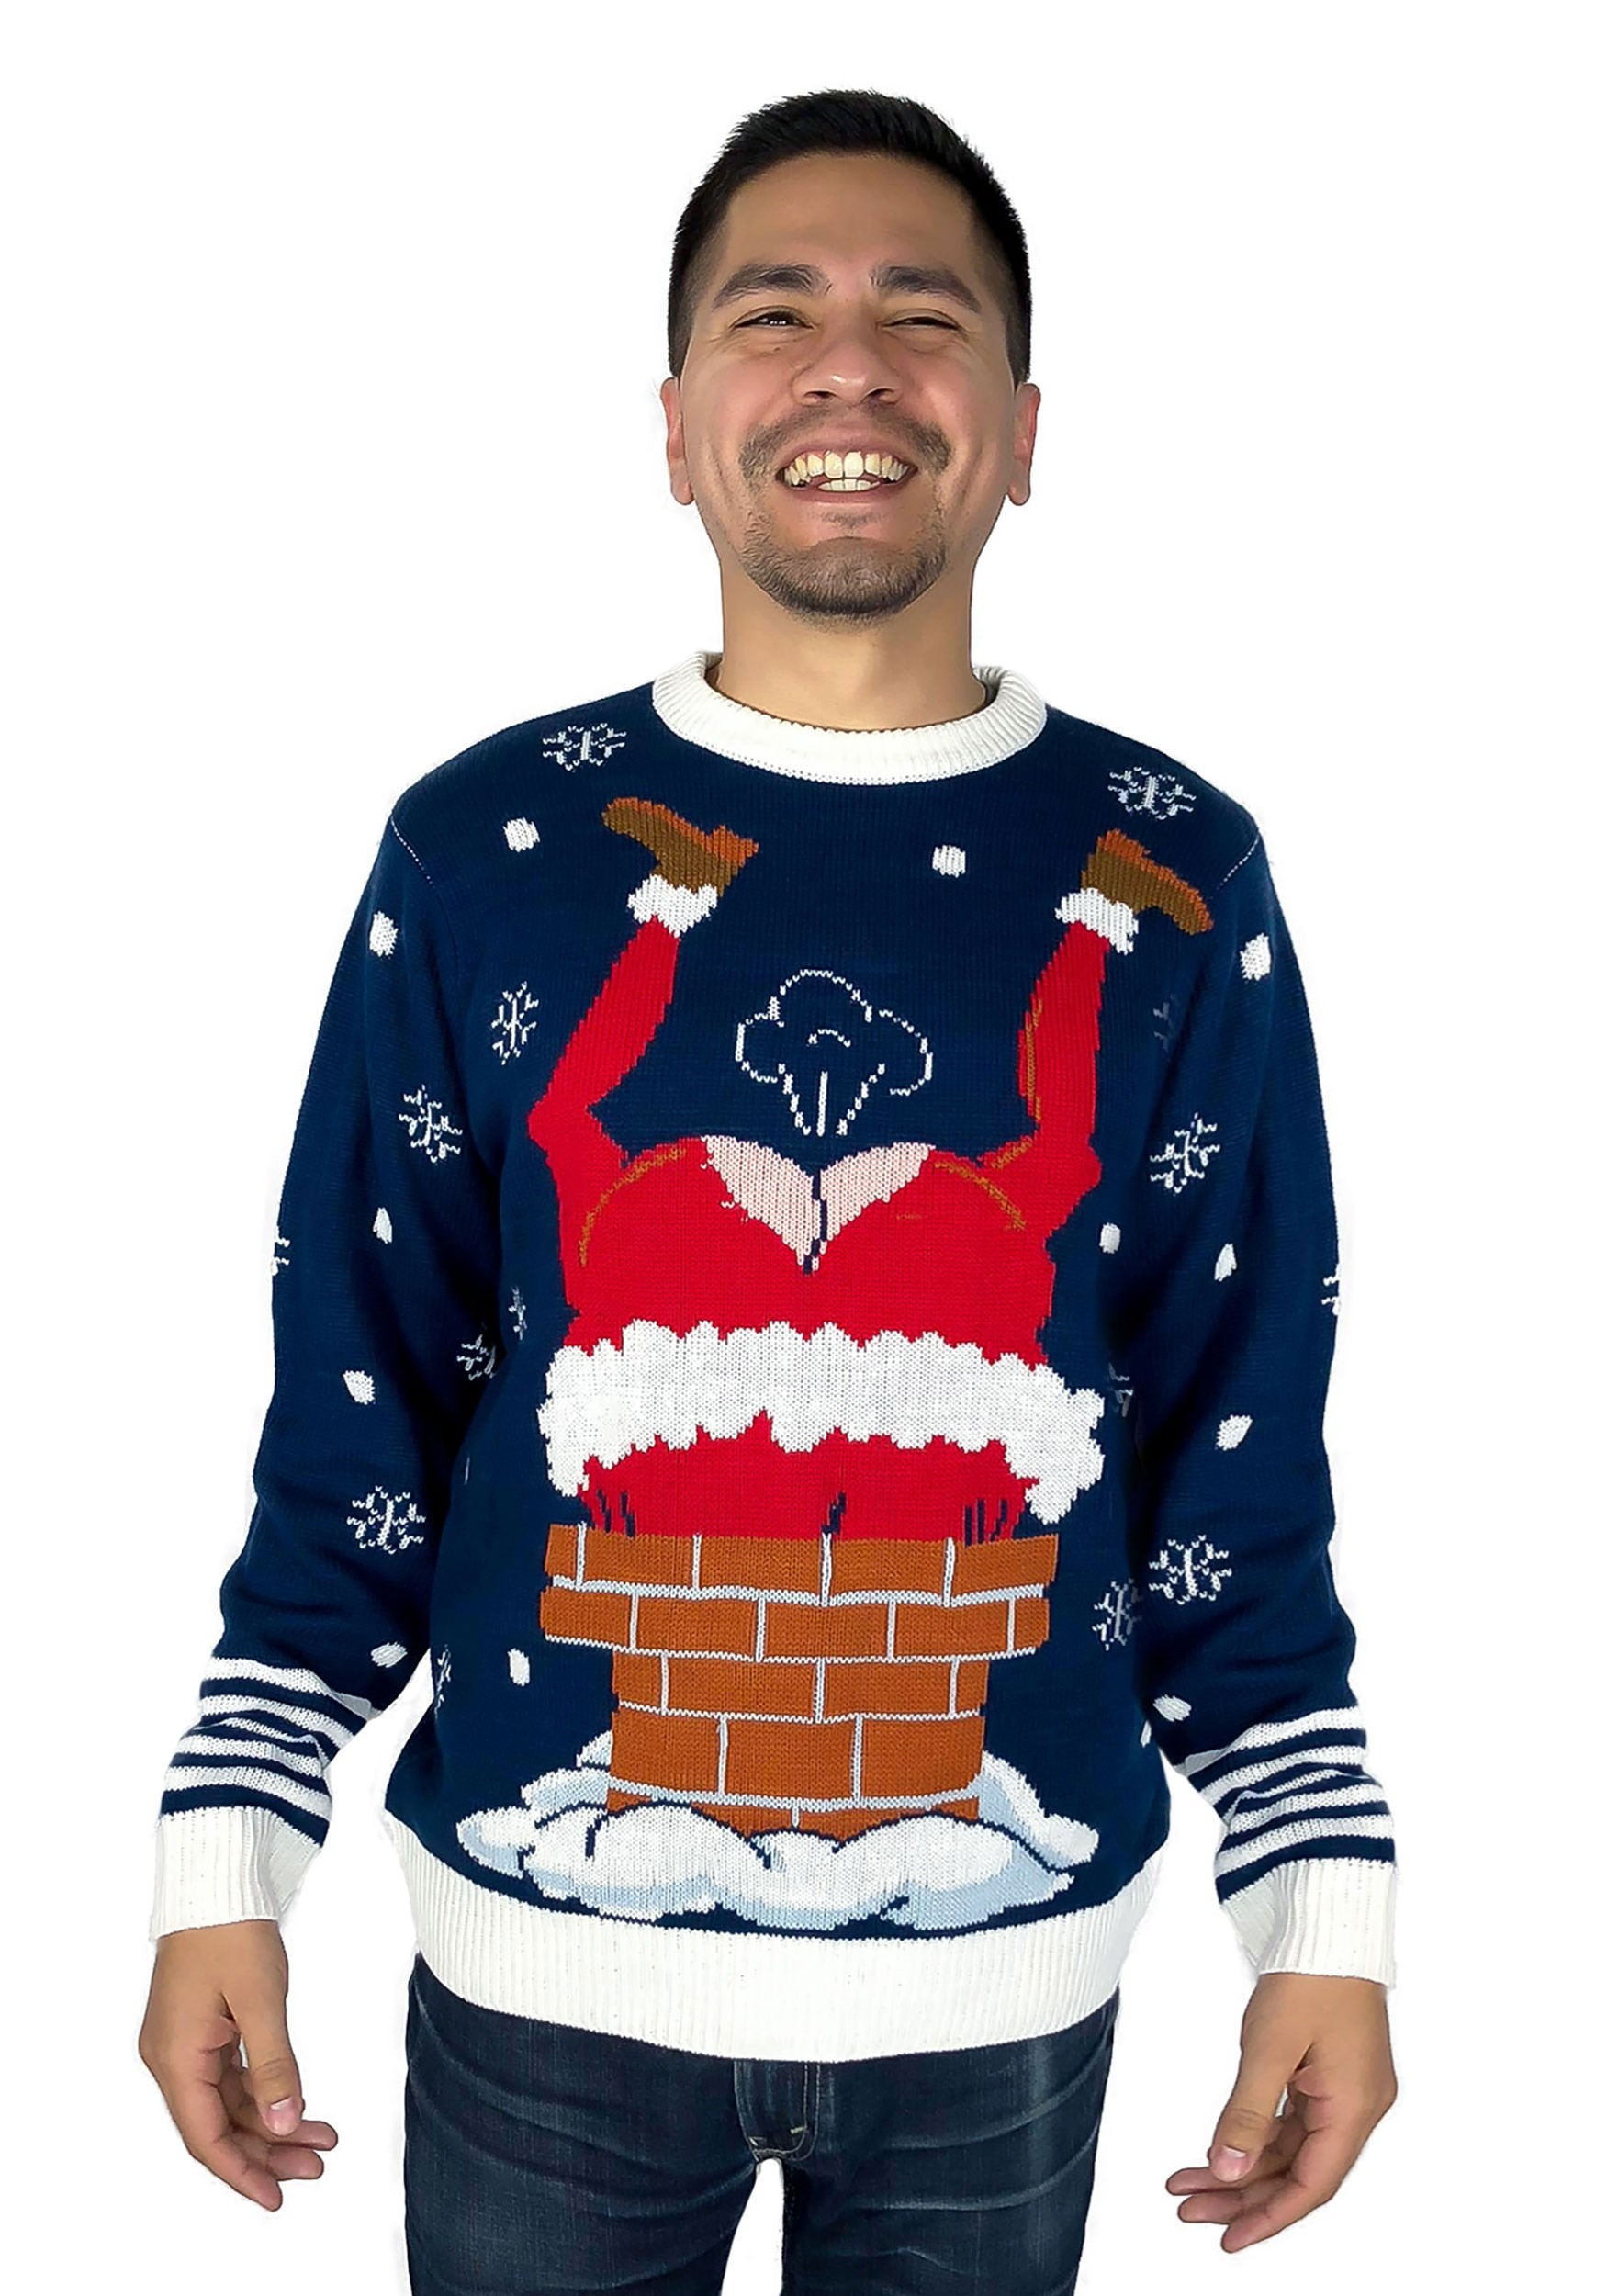 Funny Christmas Sweater.Gassy Santa Ugly Christmas Sweater